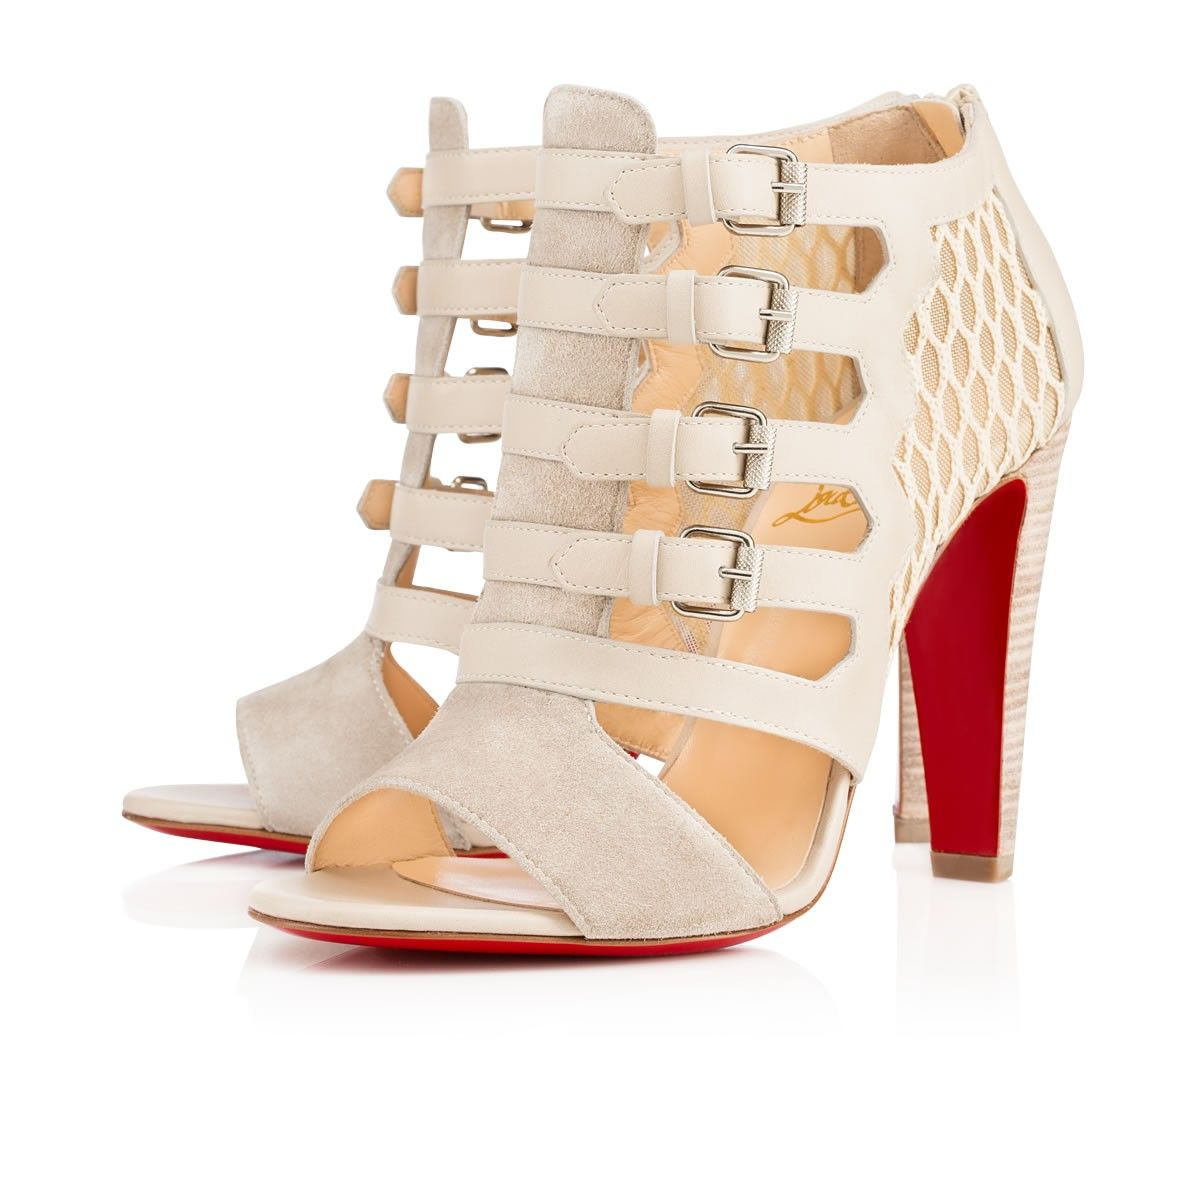 """""""Trotti"""" is an extraordinary 100mm sandal of mixed materials and influences.  Its upper is dressed in alluring colombe fishnet, calf leather and suede and finished with four gladiator straps with silver striated buckles.  Zip into this strong silhouette for a formidable look, daytime or evening."""